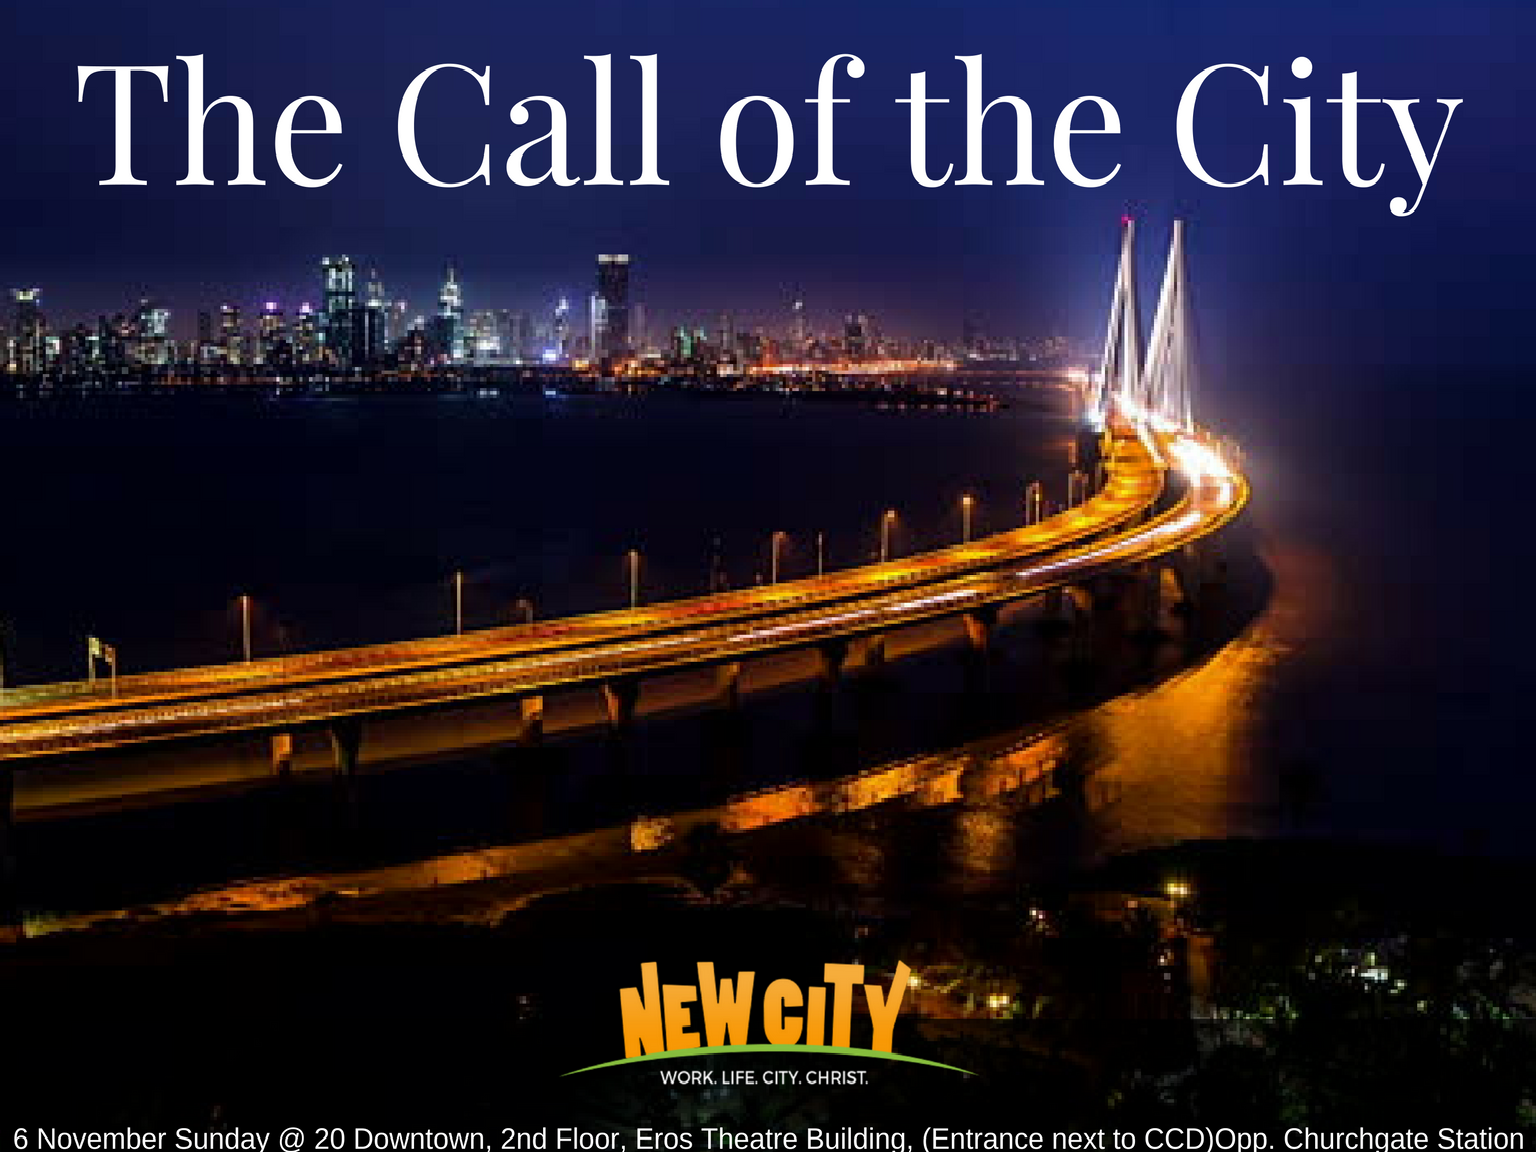 The Call of the City Image